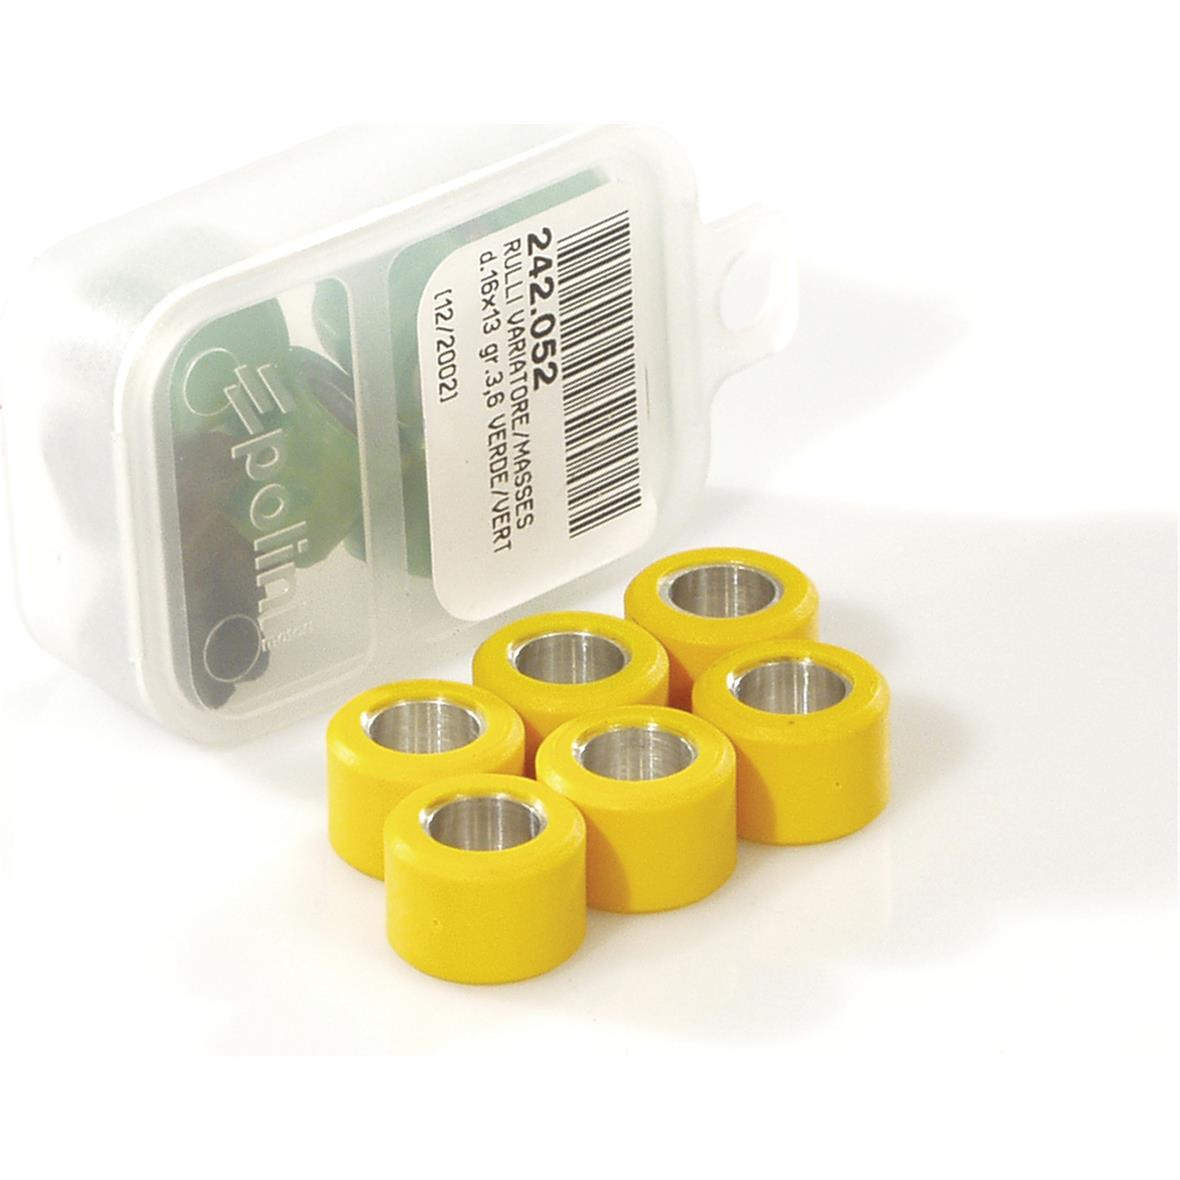 Product Image for 'Variator Rollers POLINI 20x12 mm 15,4gTitle'